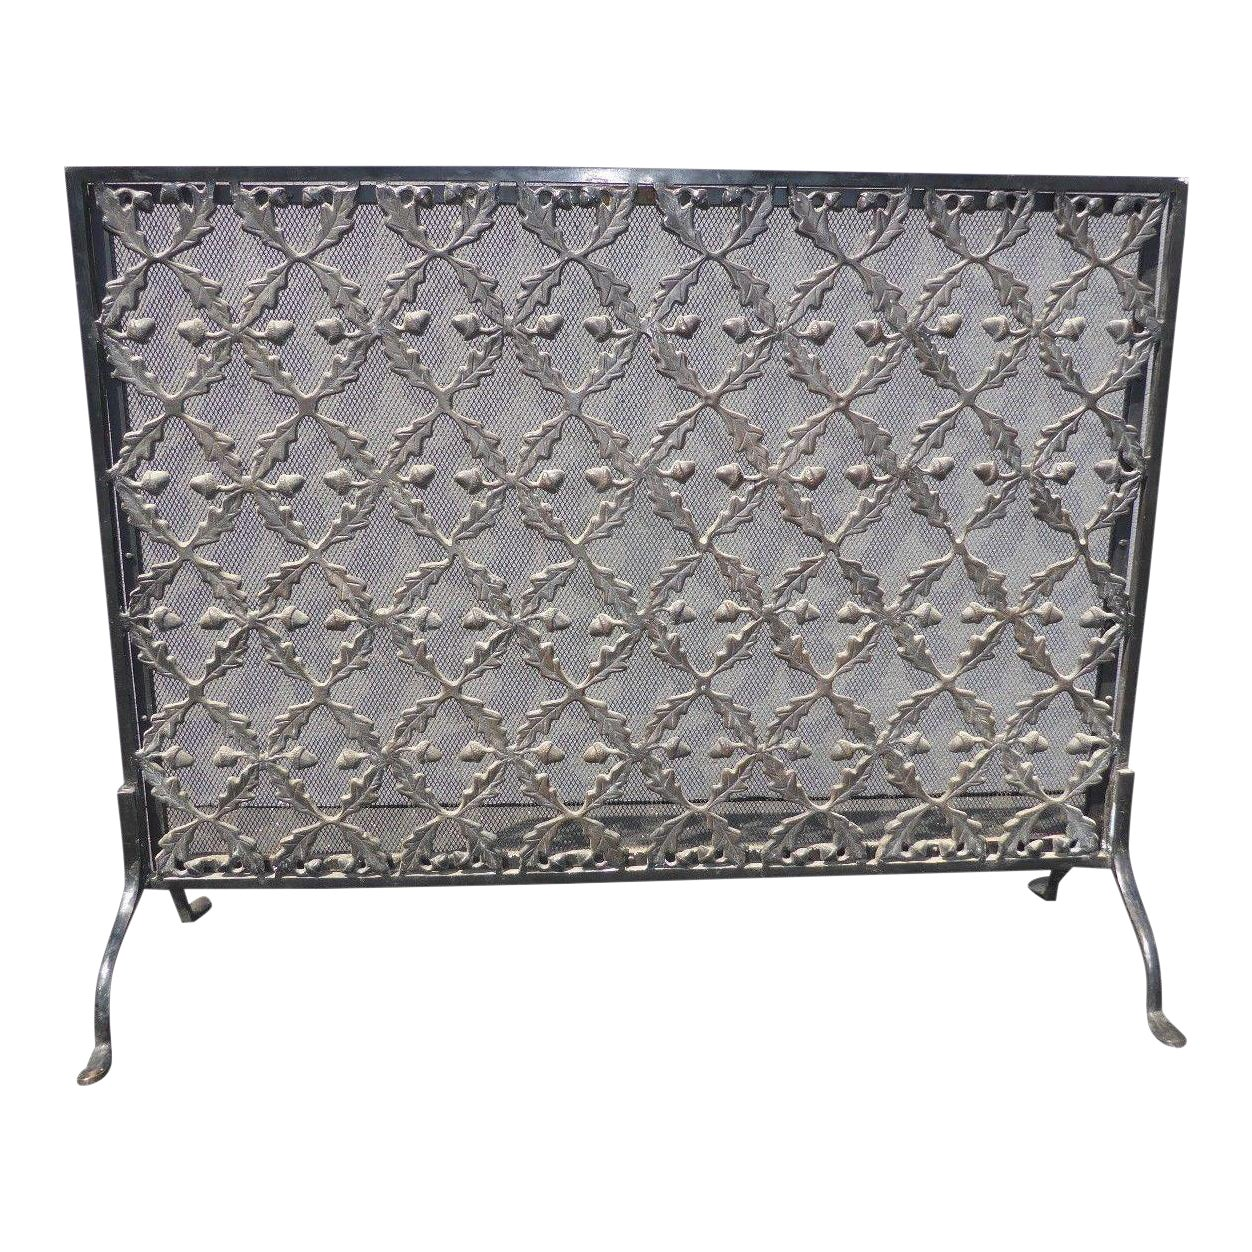 guard screen express spark northline x iron pilgrim vintage fireplace